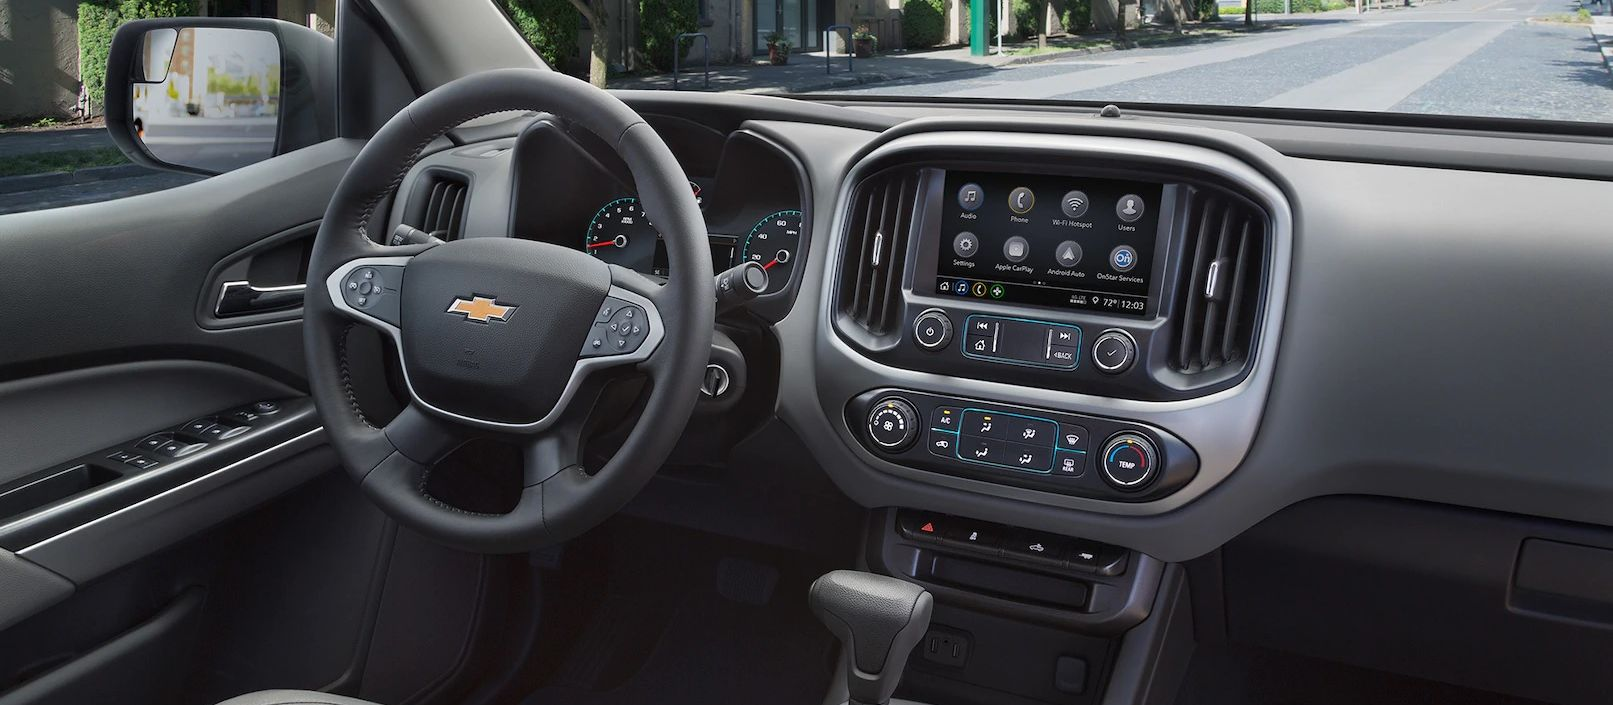 2019 Chevrolet Colorado Dashboard